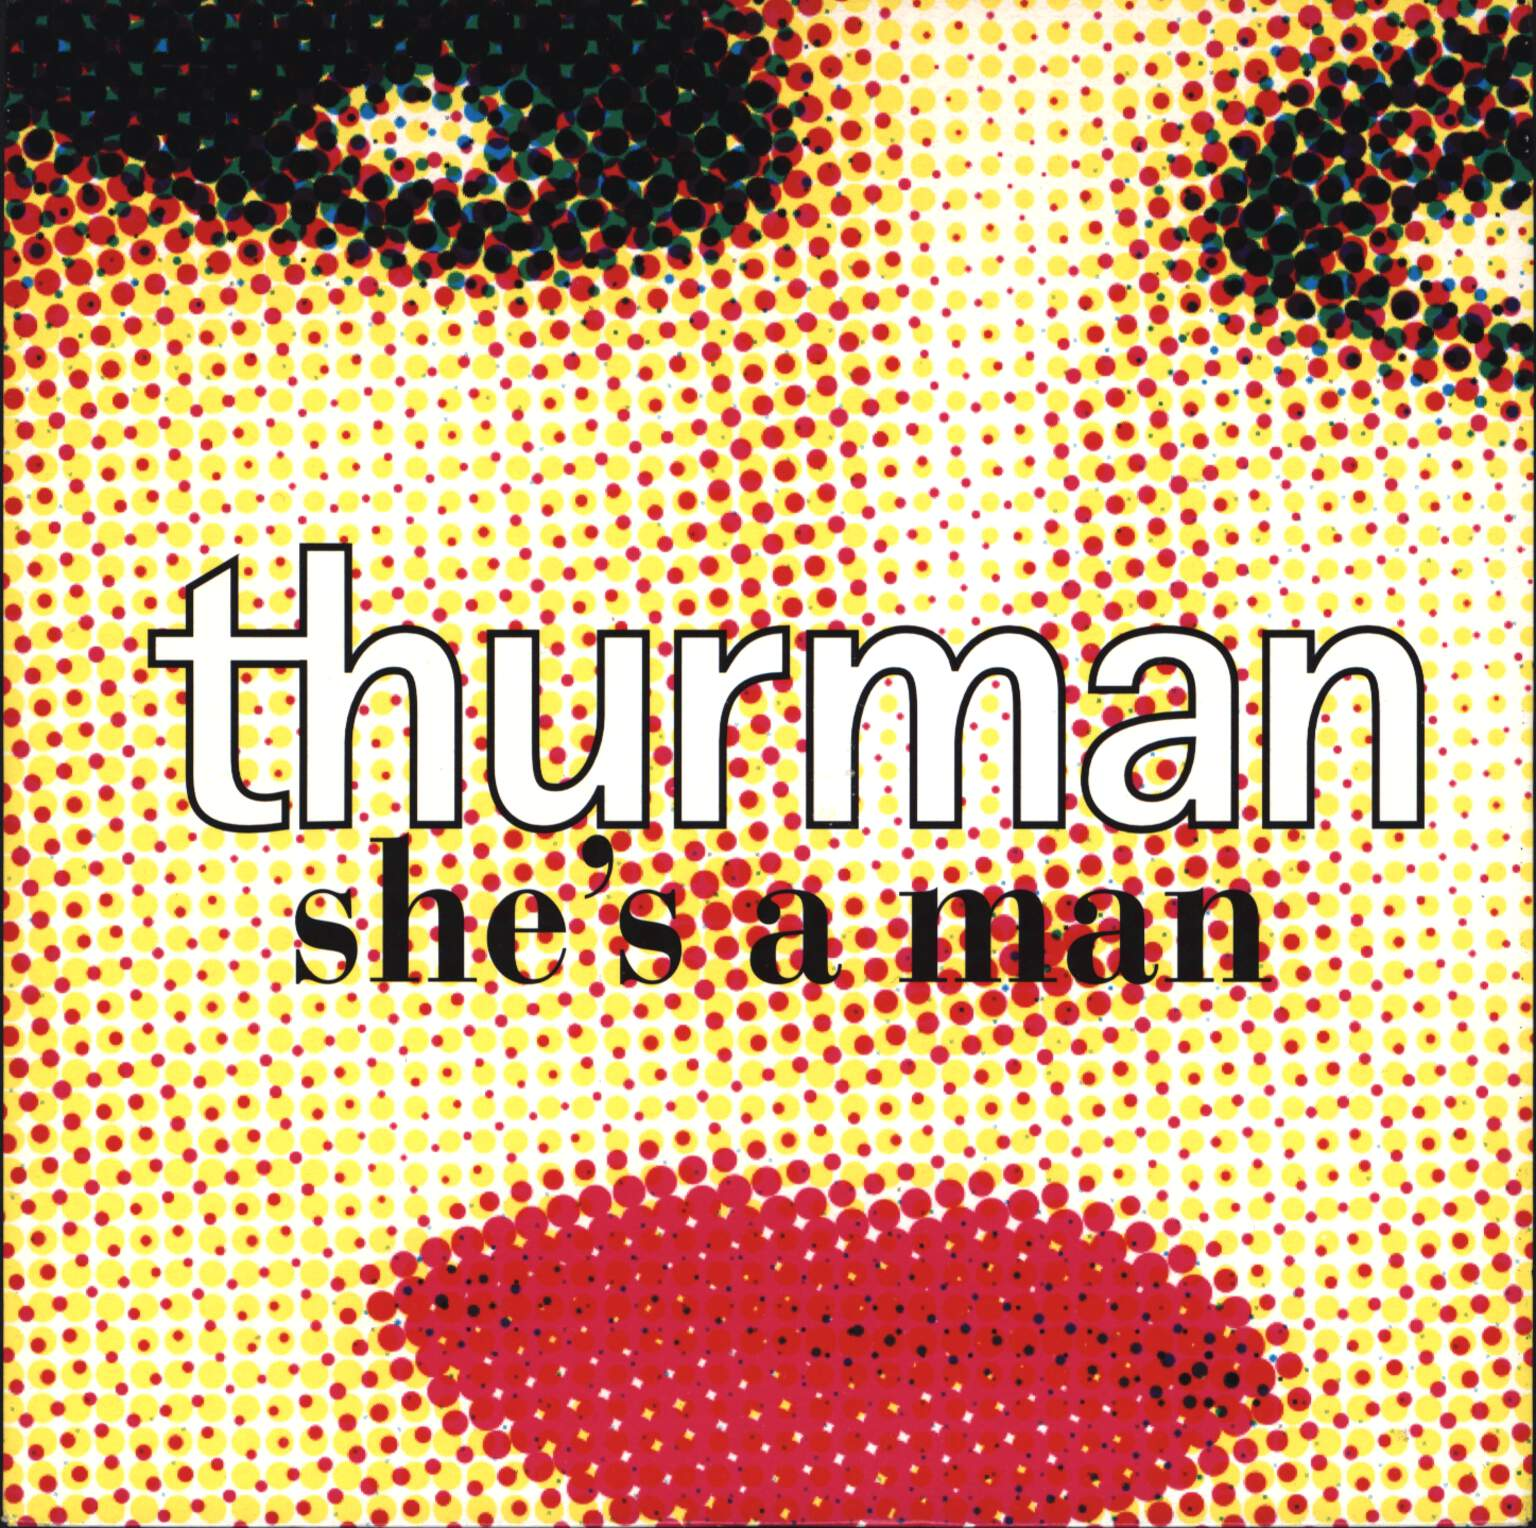 "Thurman: She's A Man, 7"" Single (Vinyl)"